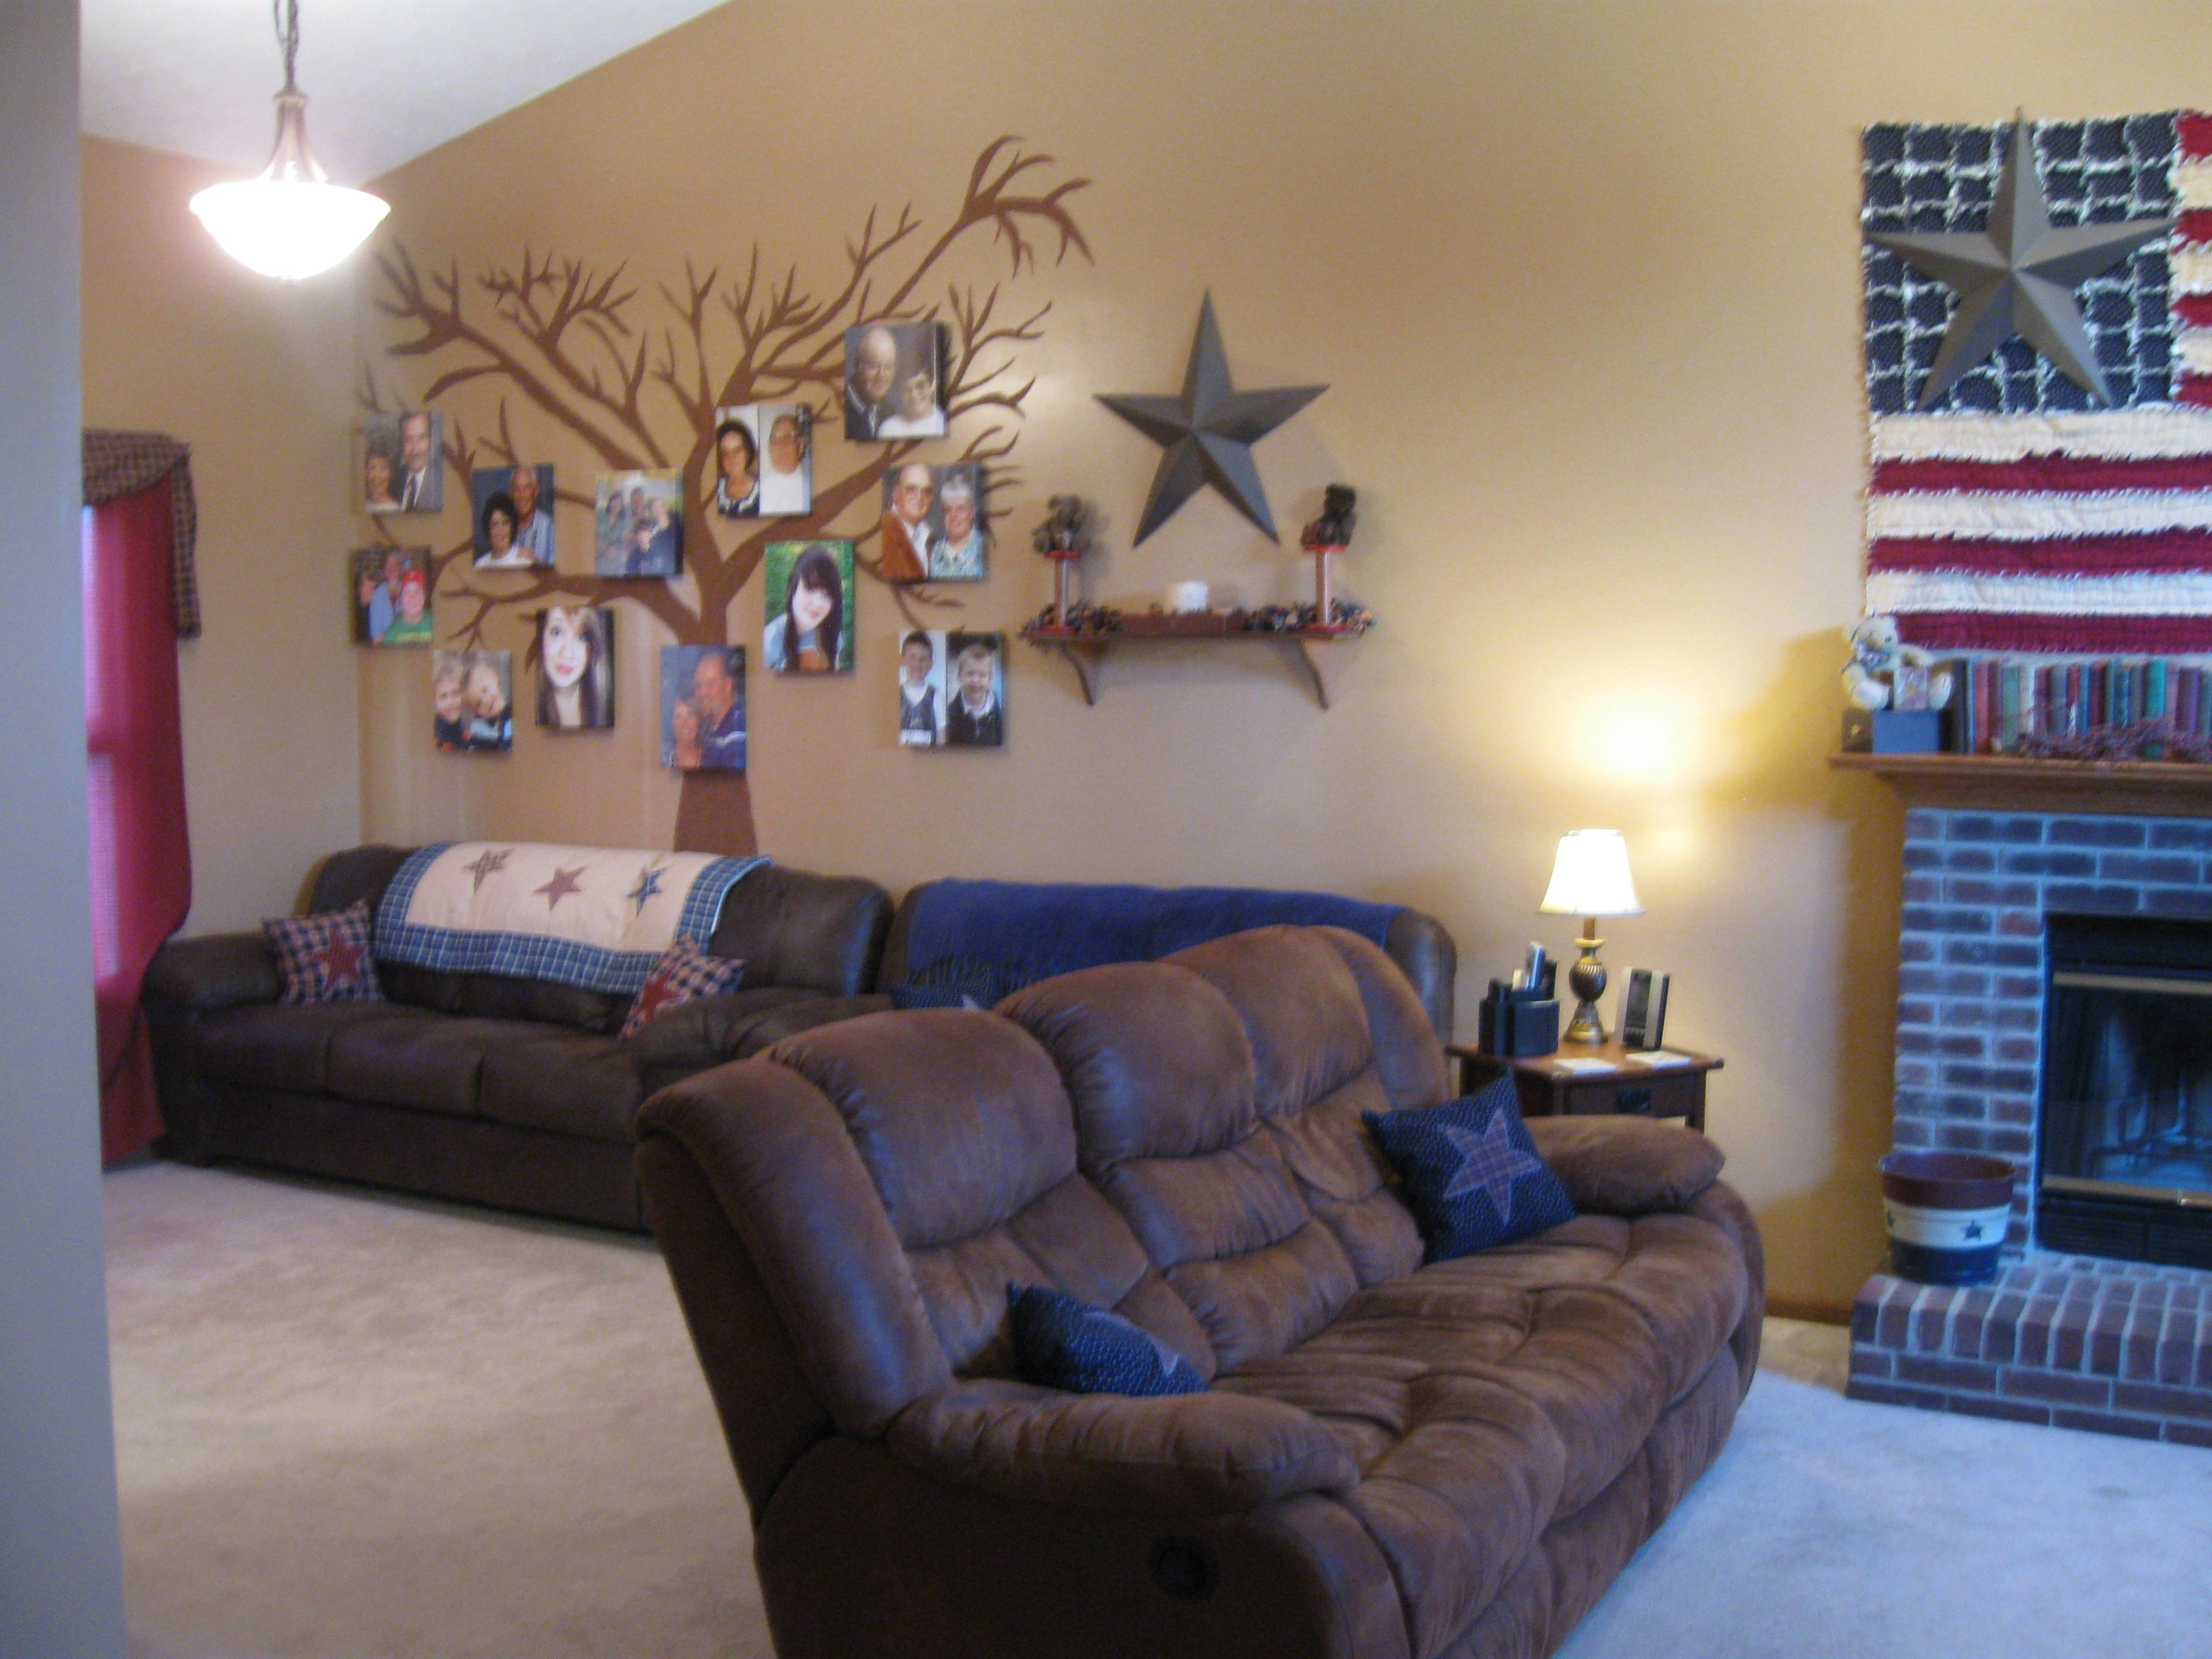 Aaslr37 Amusing Americana Style Living Room Today 2021 01 09